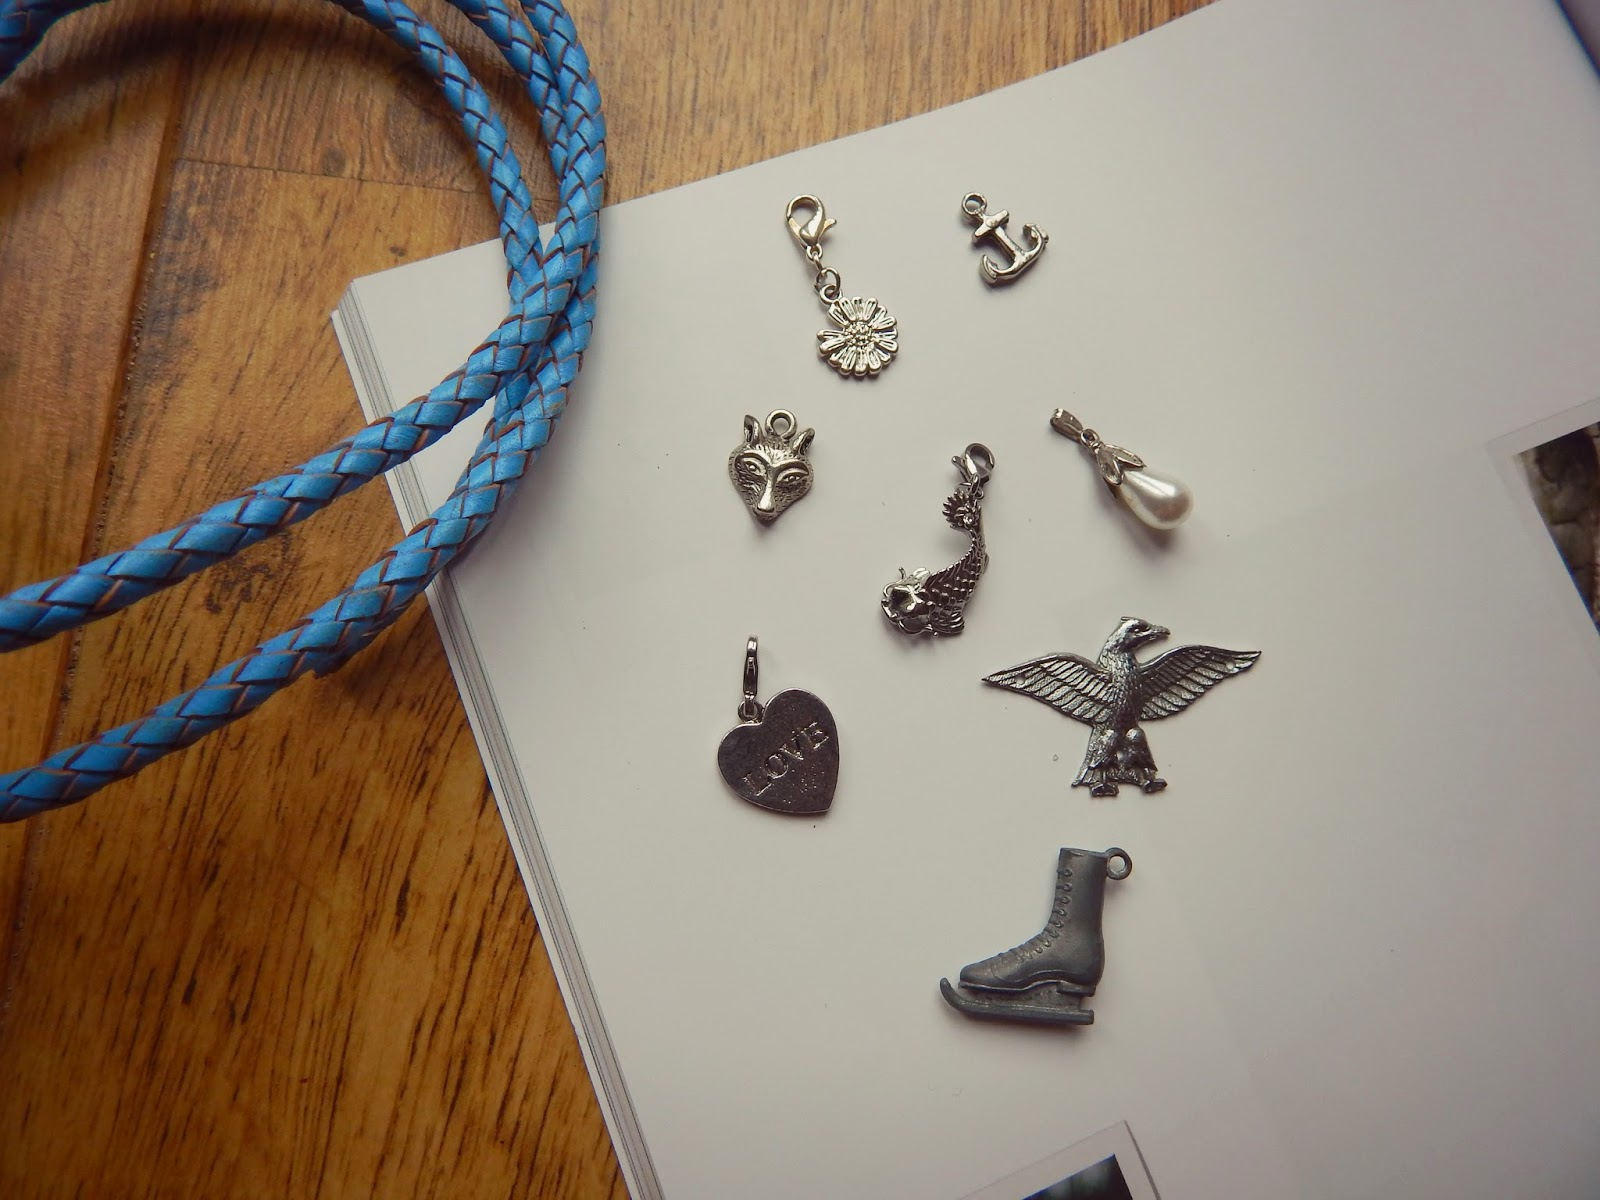 DIY Leather Cord Charm Bracelet